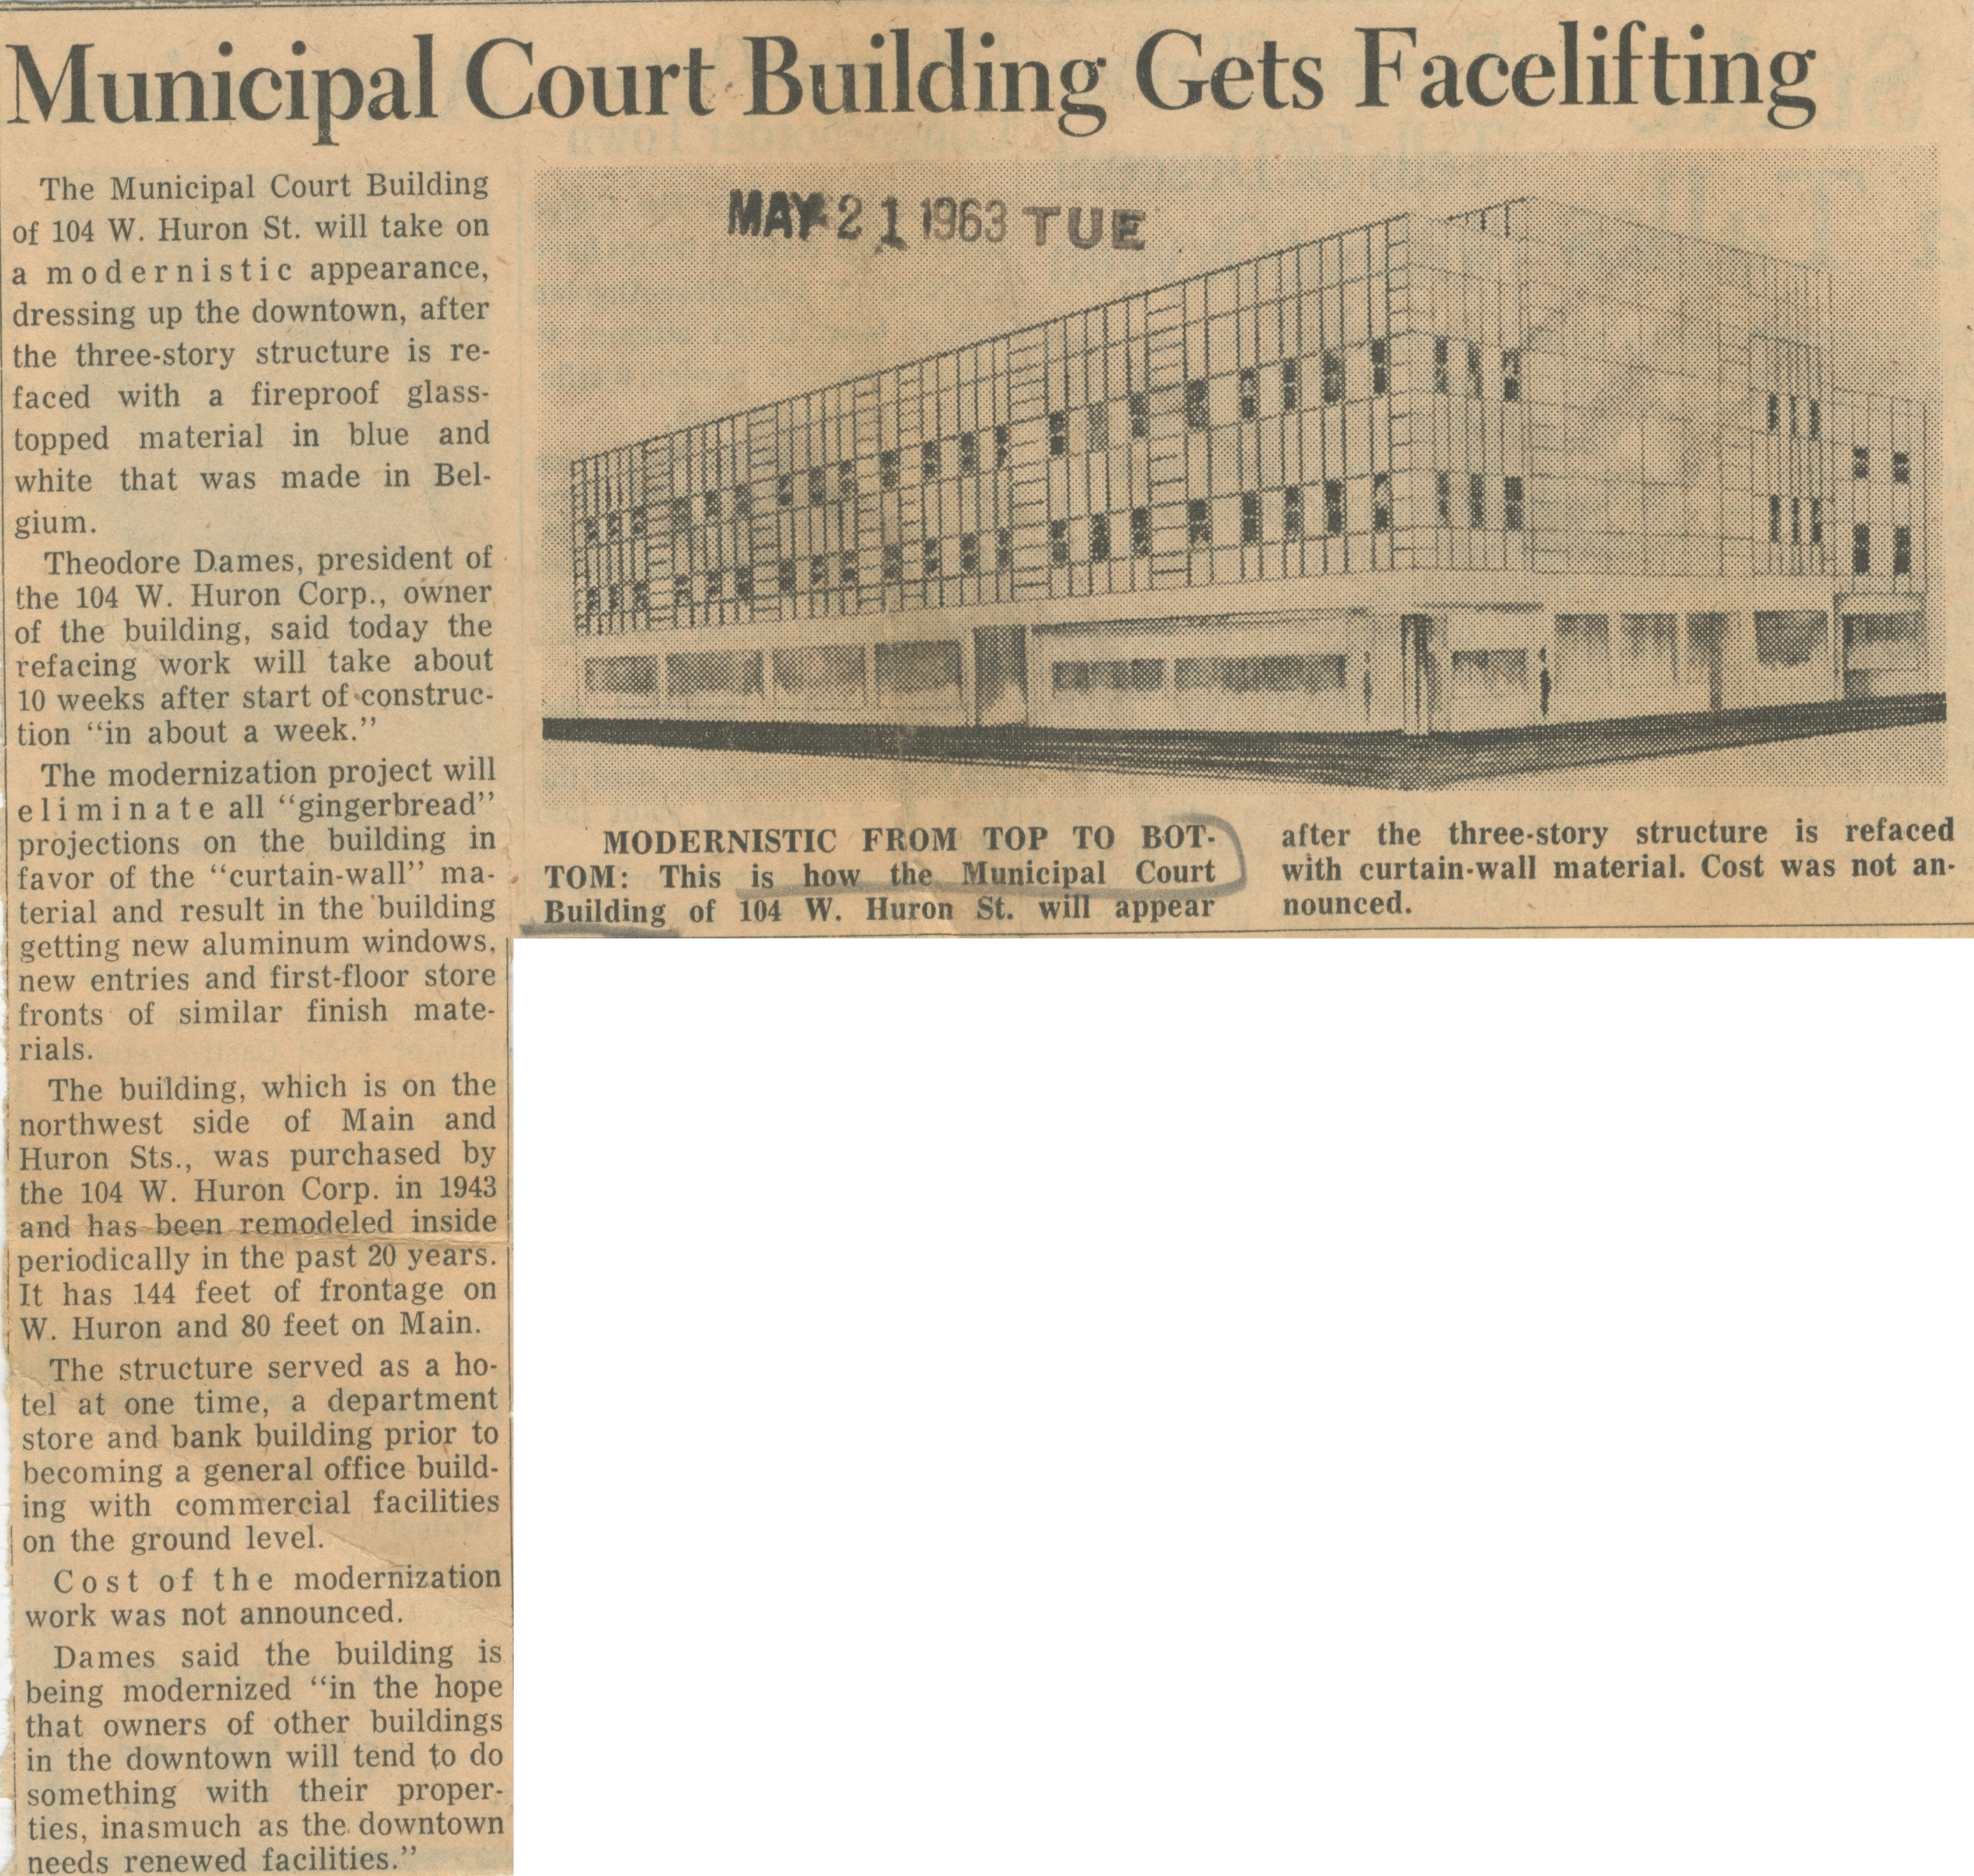 Municipal  Court Building Gets Facelifting image